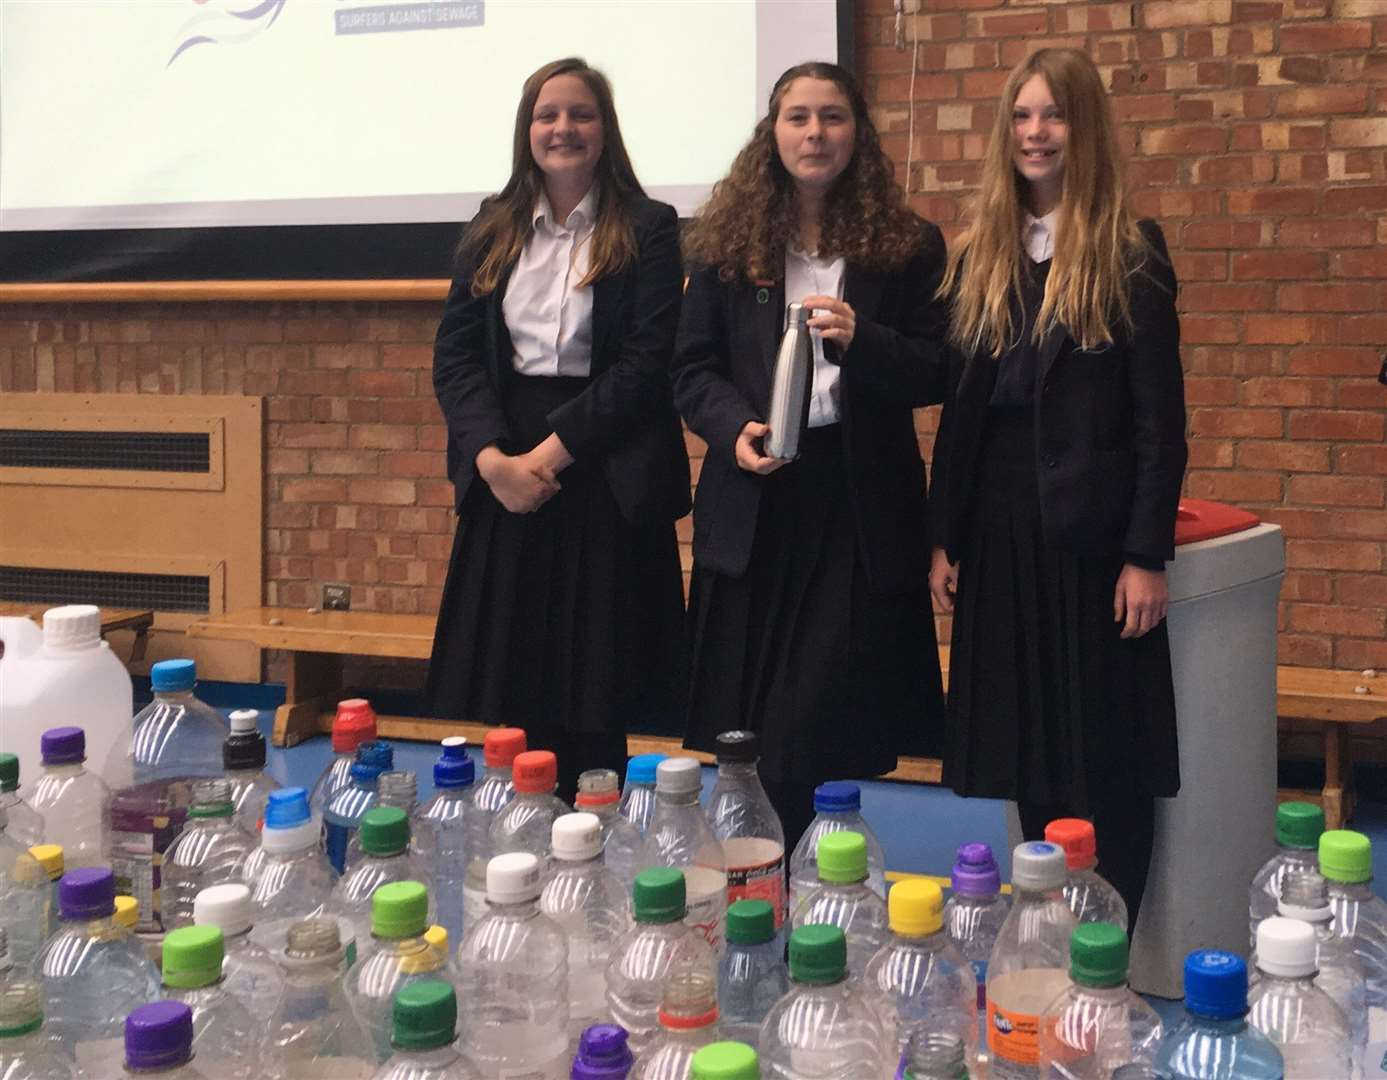 Year 8 environmental campaigners Anna Tring, Jocelyn Diaz and Hope Rowlett